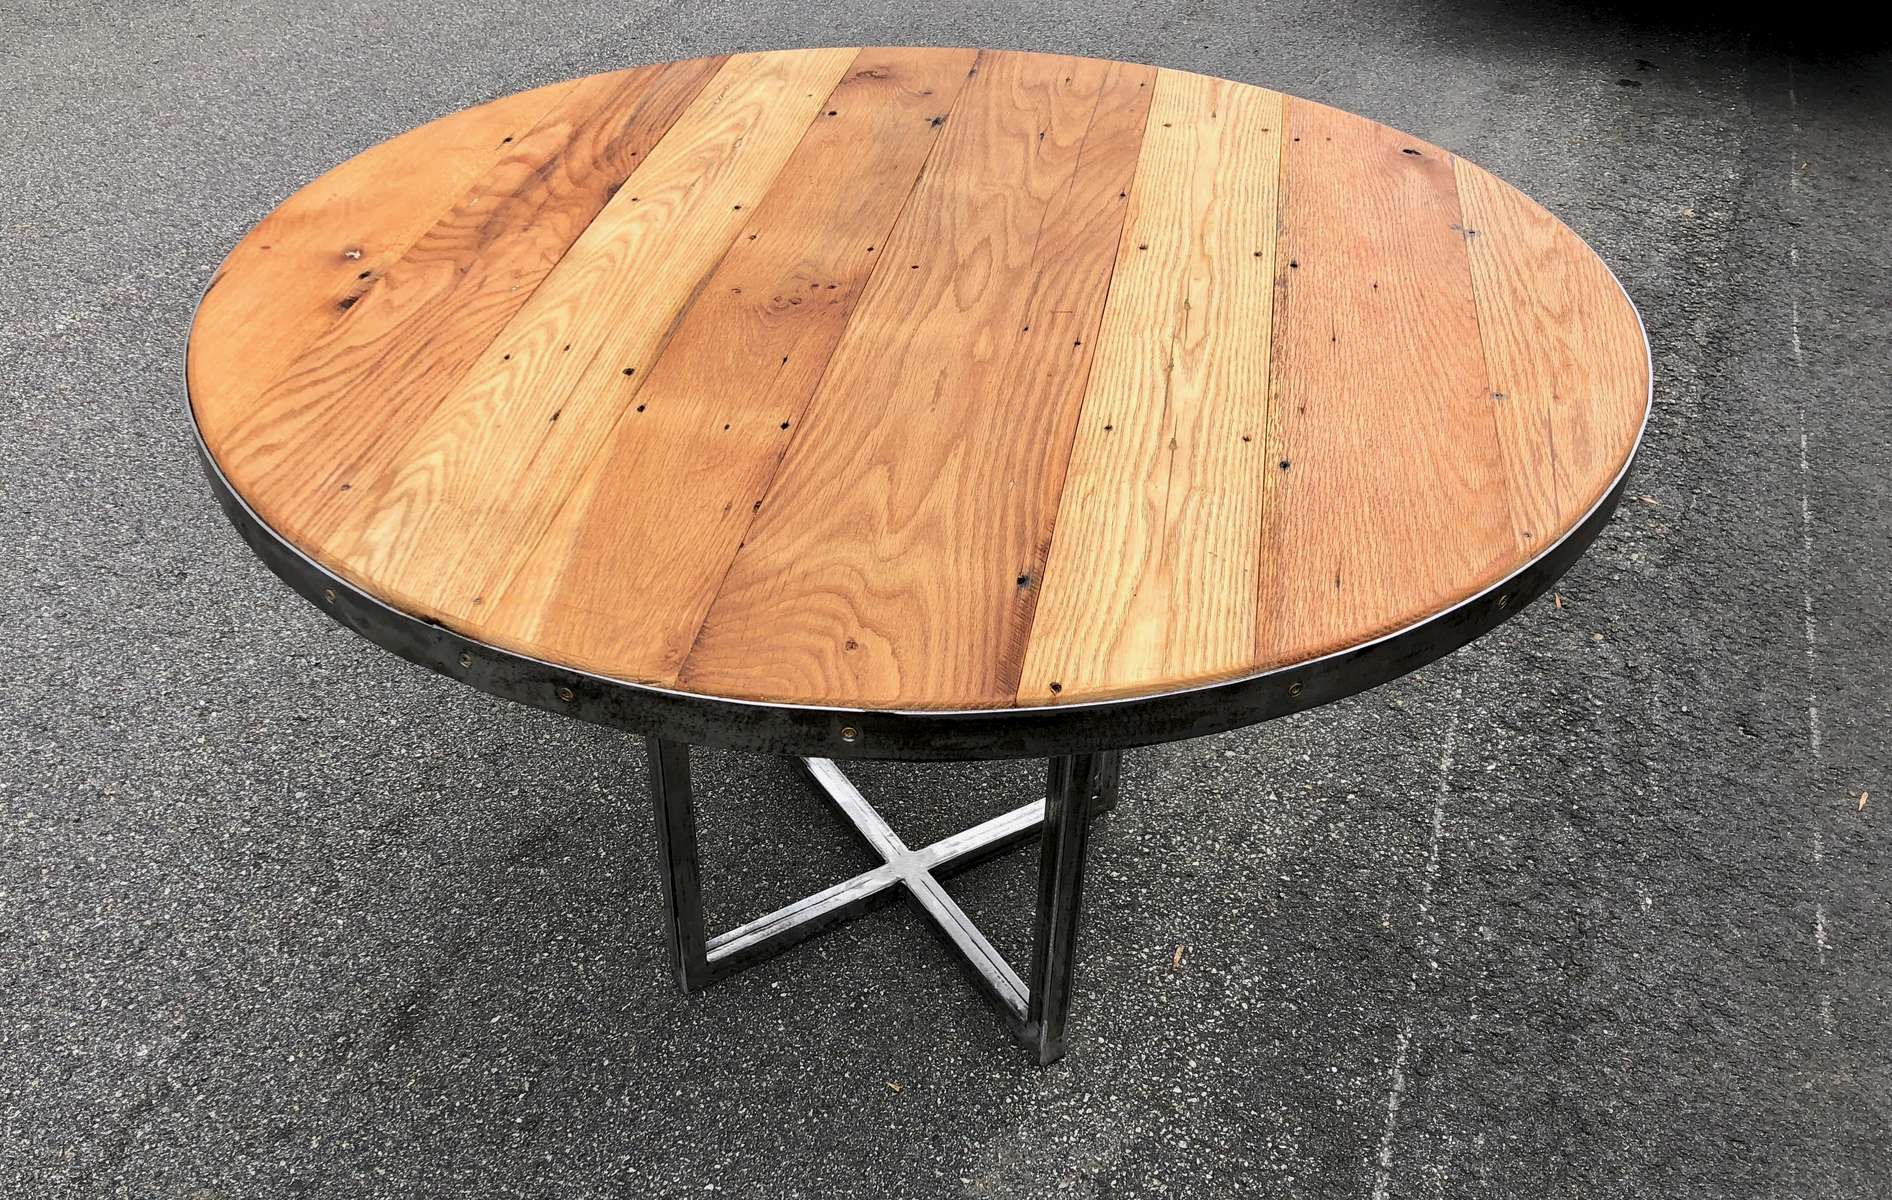 Rount-table-Oak-Chestnut-3